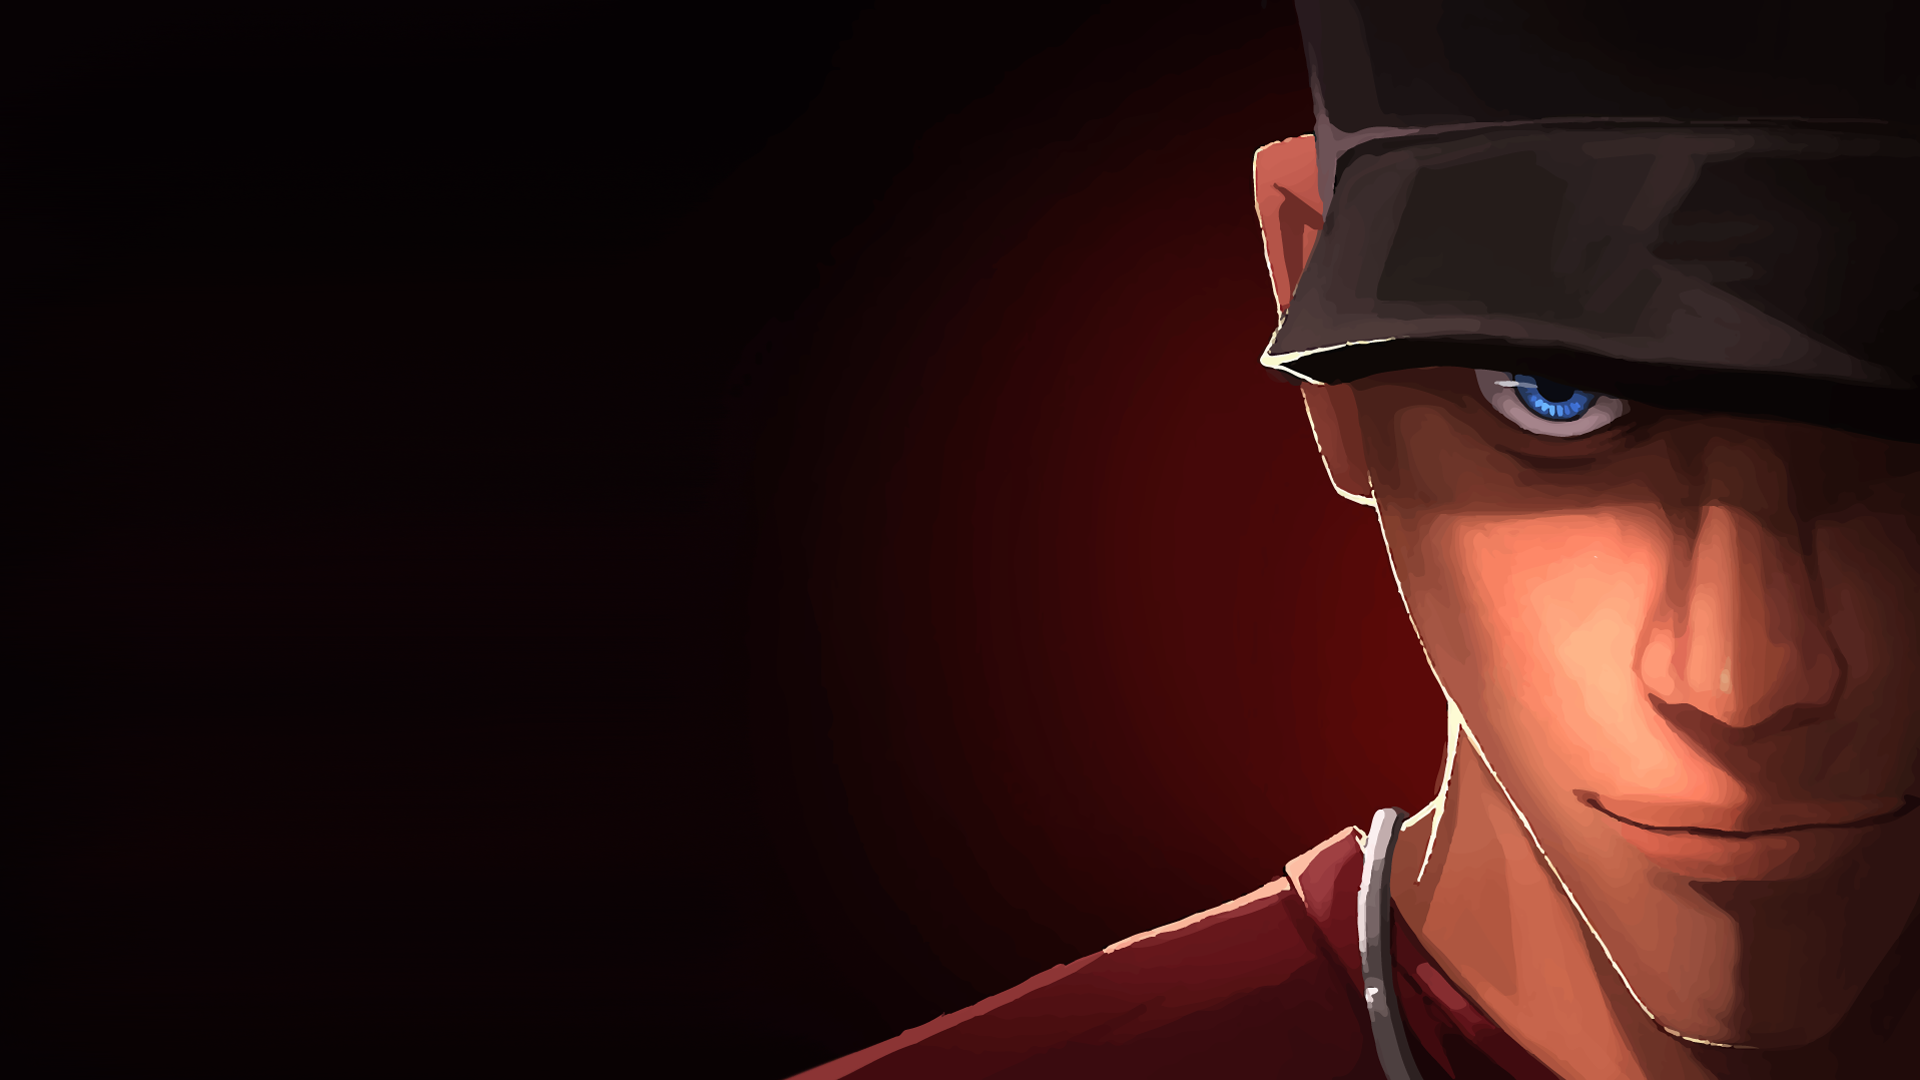 finally finished the Engineer portrait and the set is complete tf2 1920x1080